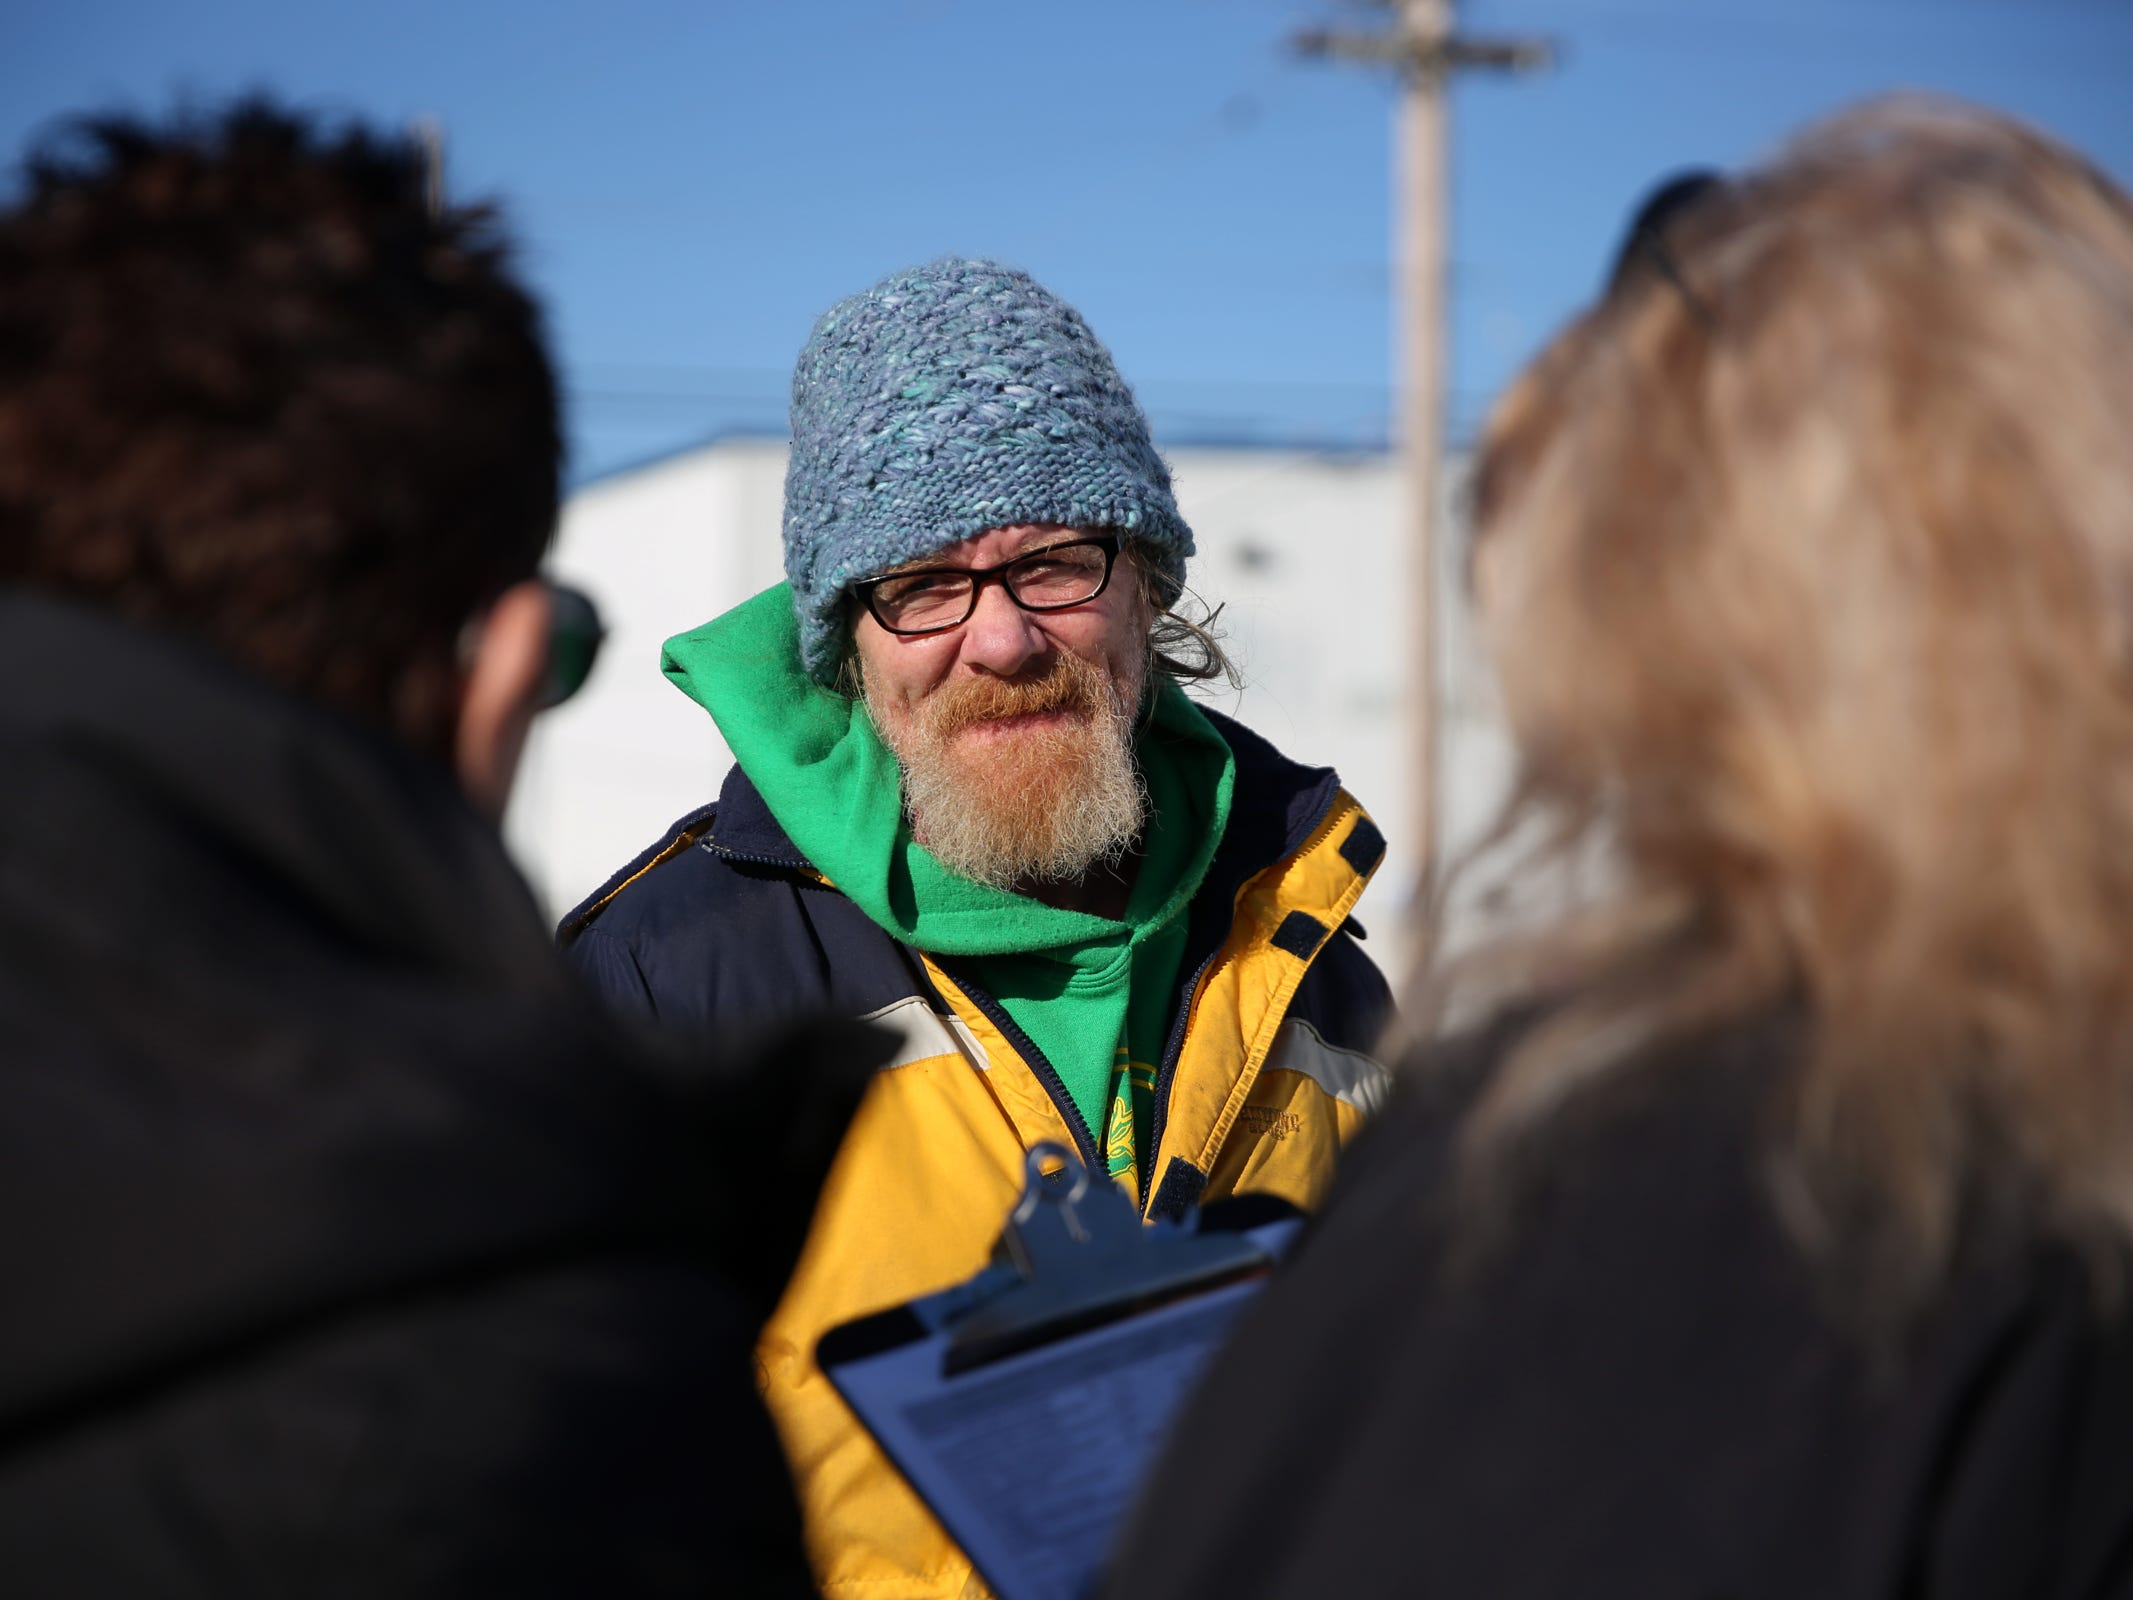 Dave West, 52, gives his information to volunteers Pamella Watson, left, and Lorrie Walker during the annual Point-in-Time homeless count in Salem on Wednesday, Jan. 30, 2019. The number of people counted helps local programs qualify for federal funds to combat homelessness. He lives in a travel trailer with his pregnant girlfriend and dog.